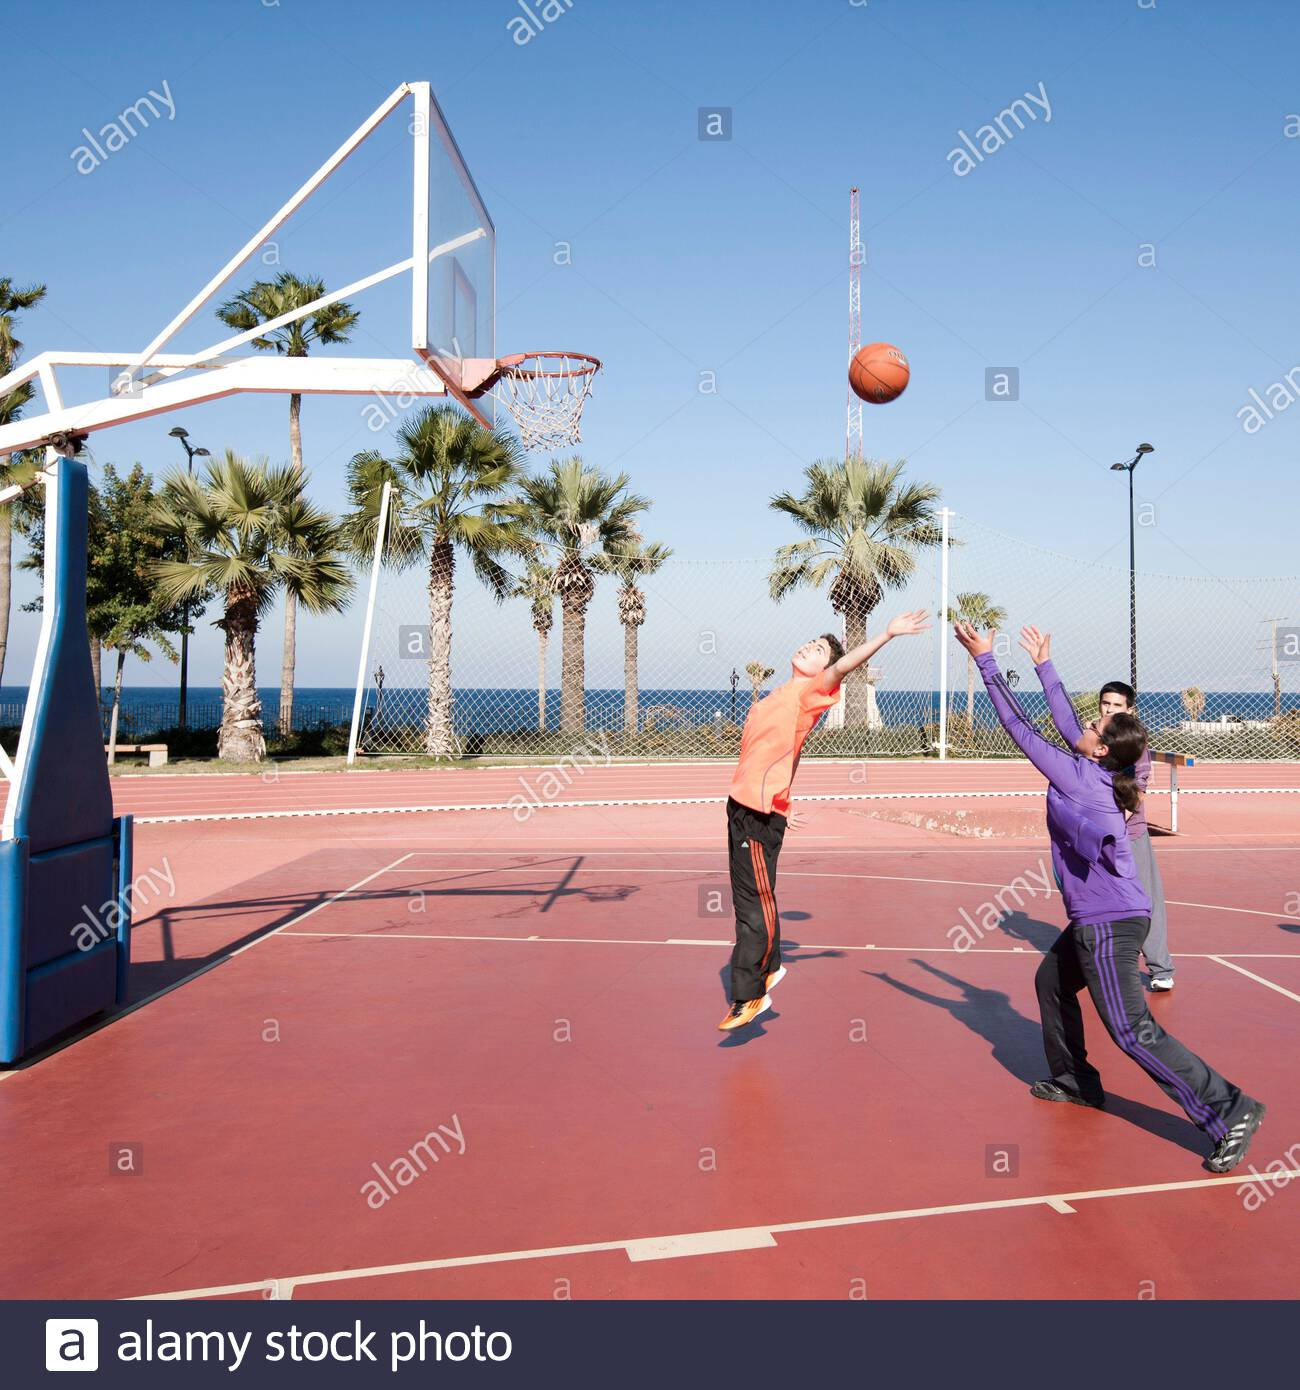 Student playing basketball at AUB (American University of Beirut) campus,  Beirut, Lebanon Stock Photo - Alamy